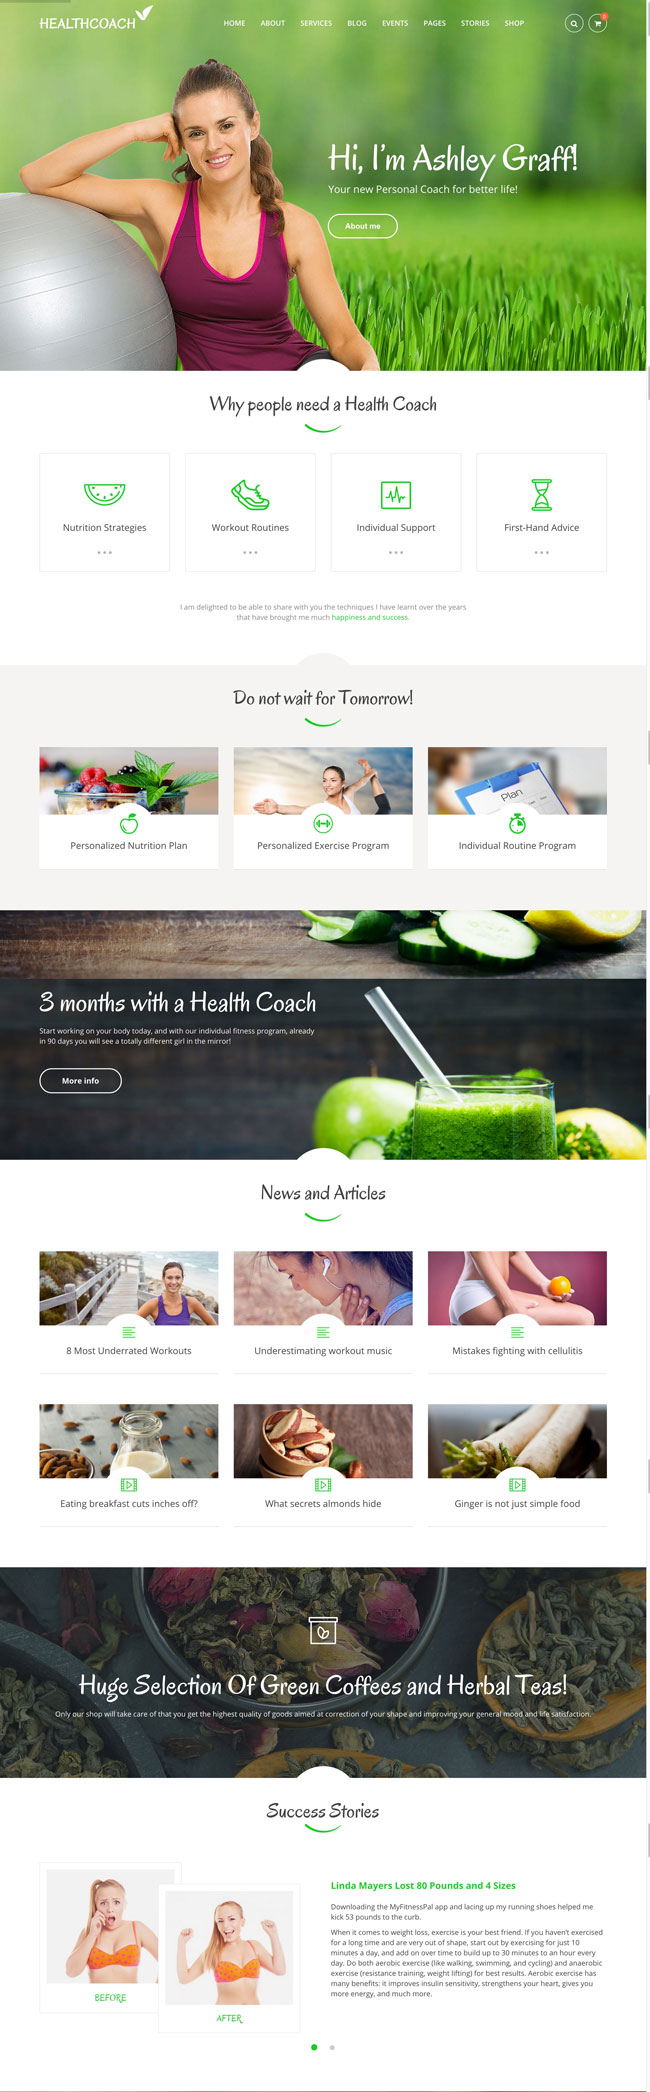 Health-Coach-Wordpress-Theme-for-Holistic-Life-Coaching